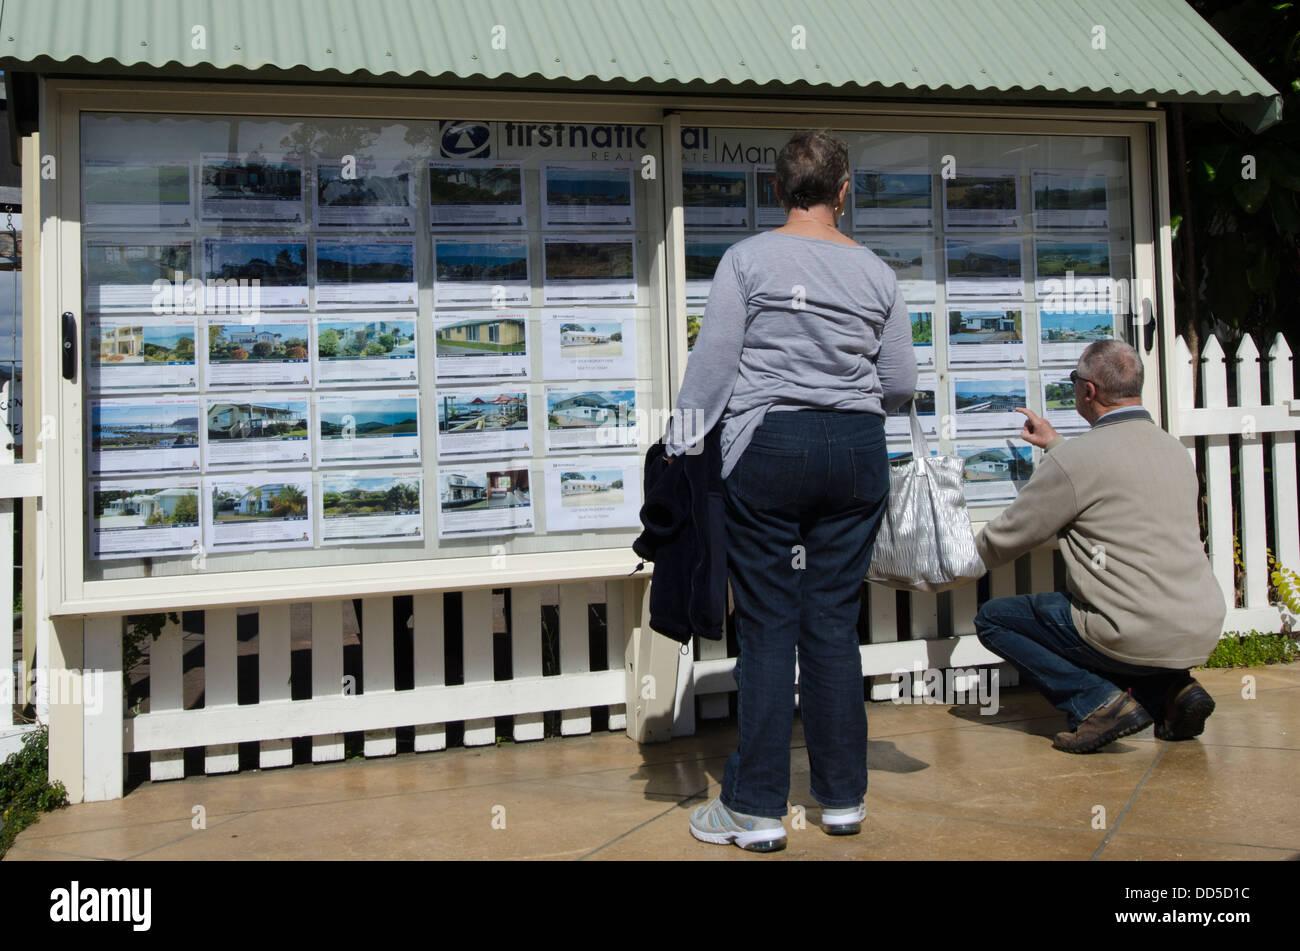 Couple looks at house listing on a signpost of Real Estate office in New Zealand - Stock Image